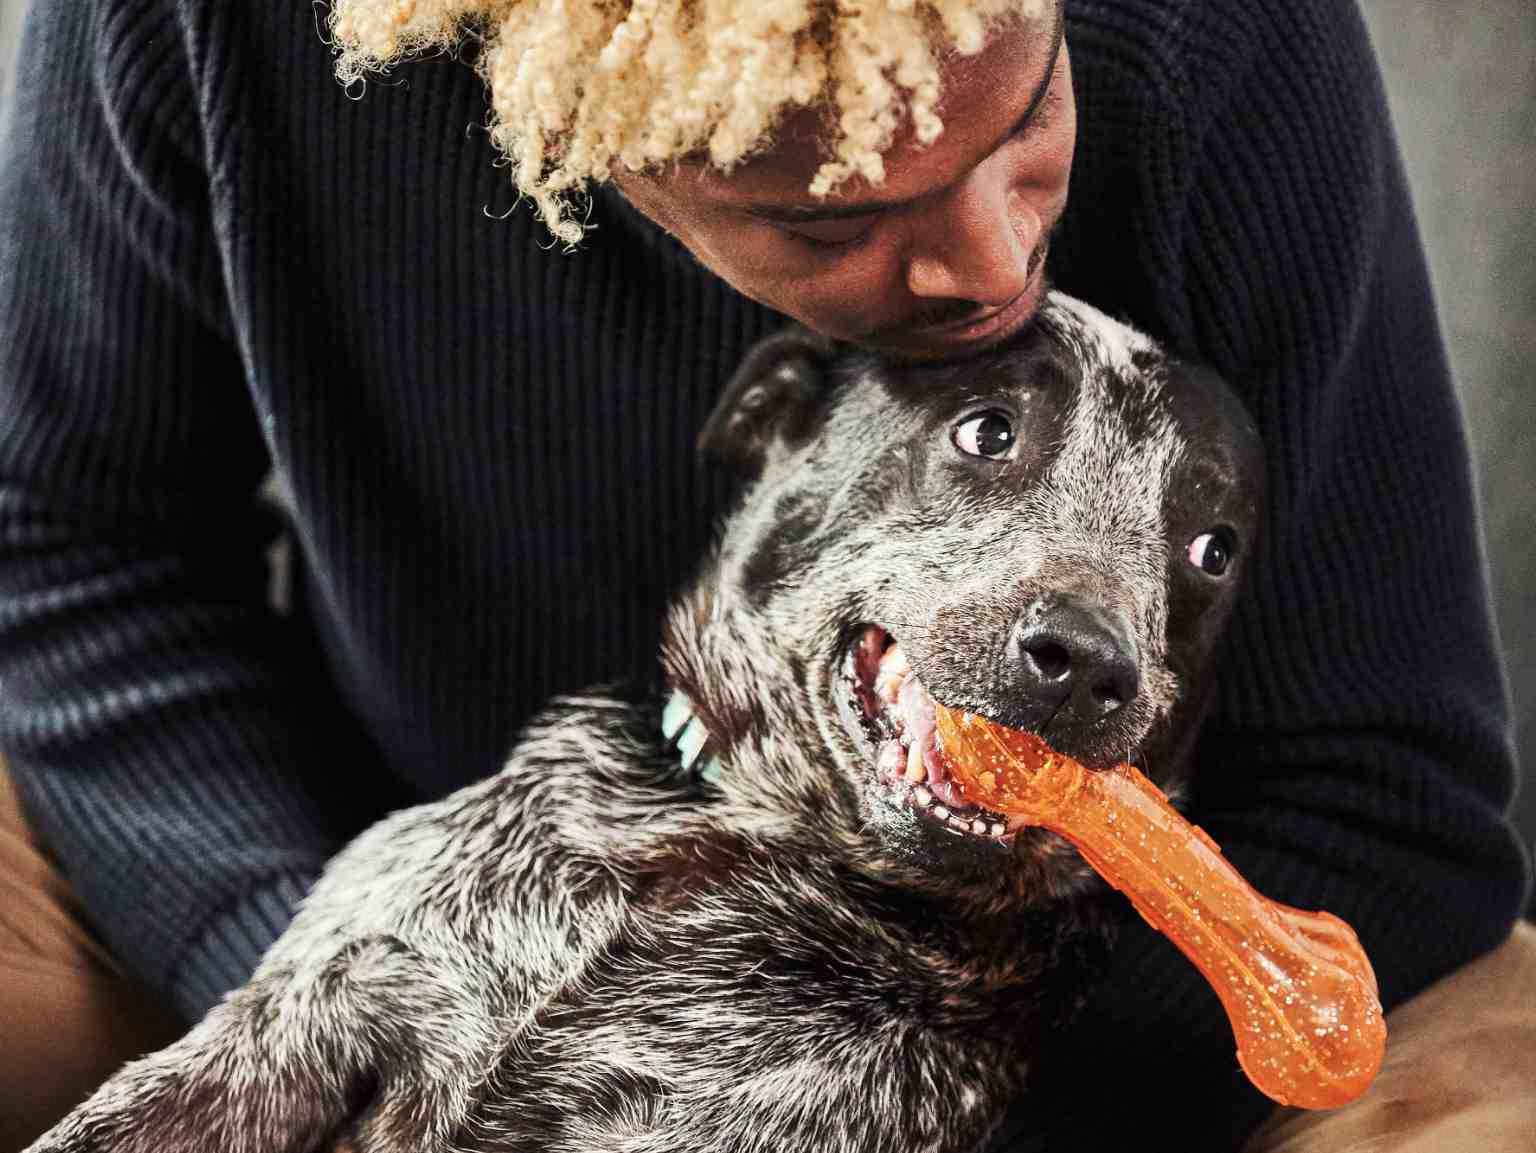 A dog owner kissing his dog, which is holding an orange toy